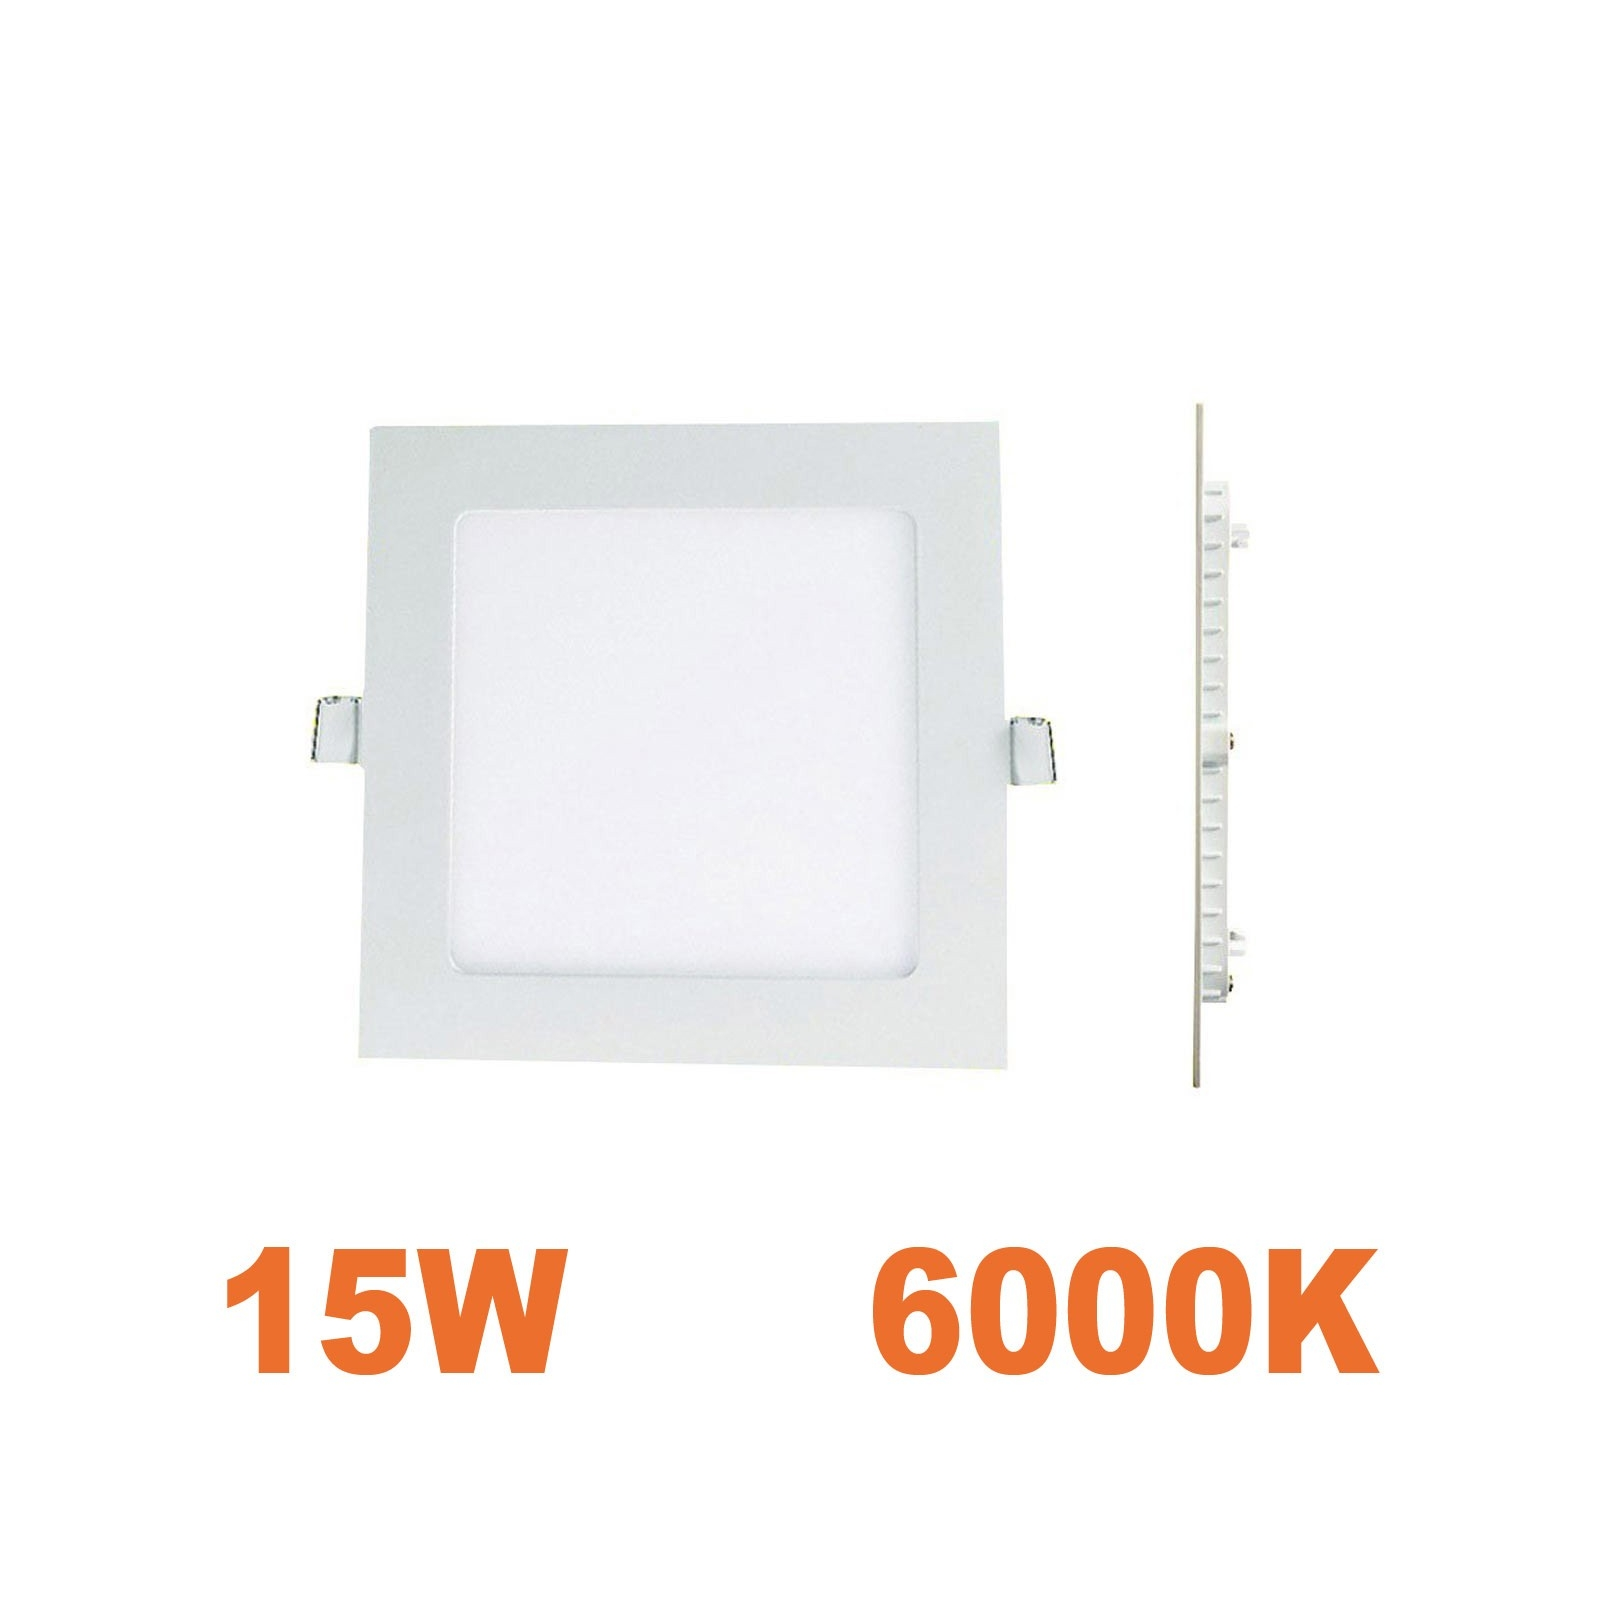 Spot Encastrable LED Carre Downlight Panel Extra-Plat 15W Blanc Froid 6000K